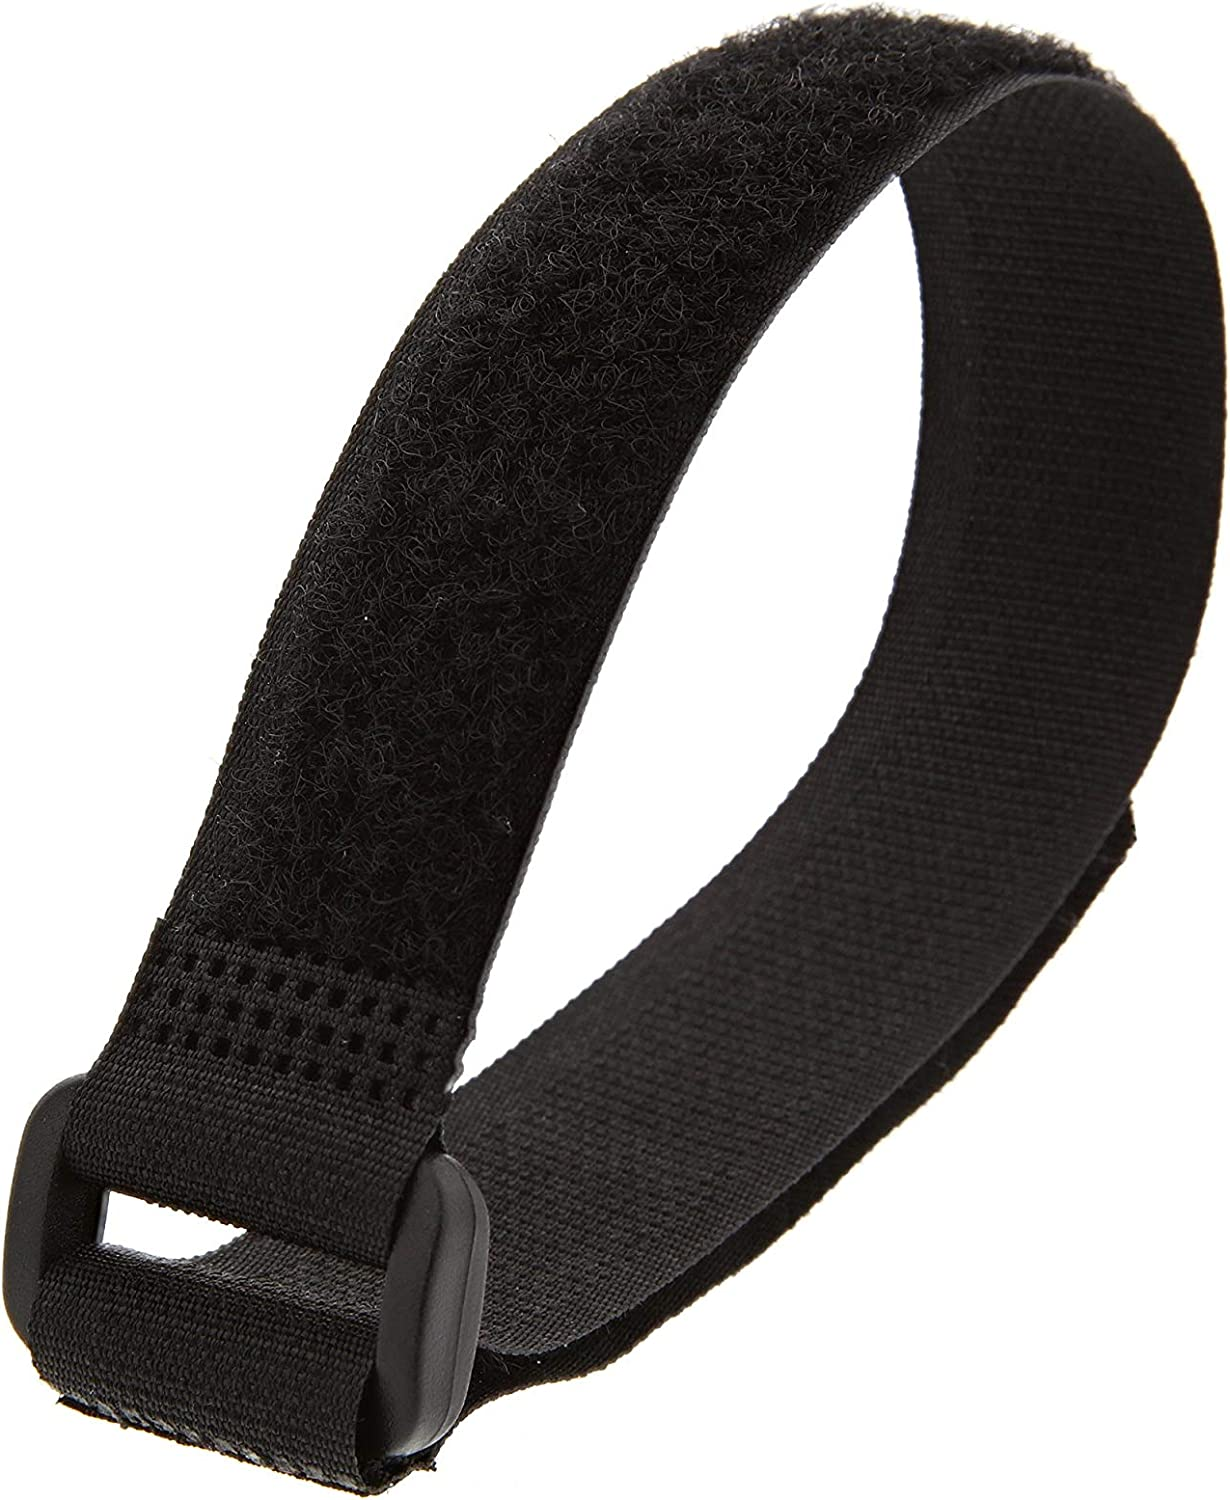 12 Inch Cinch Straps 5 Pack Secure Cable Ties CECOMINOD004894